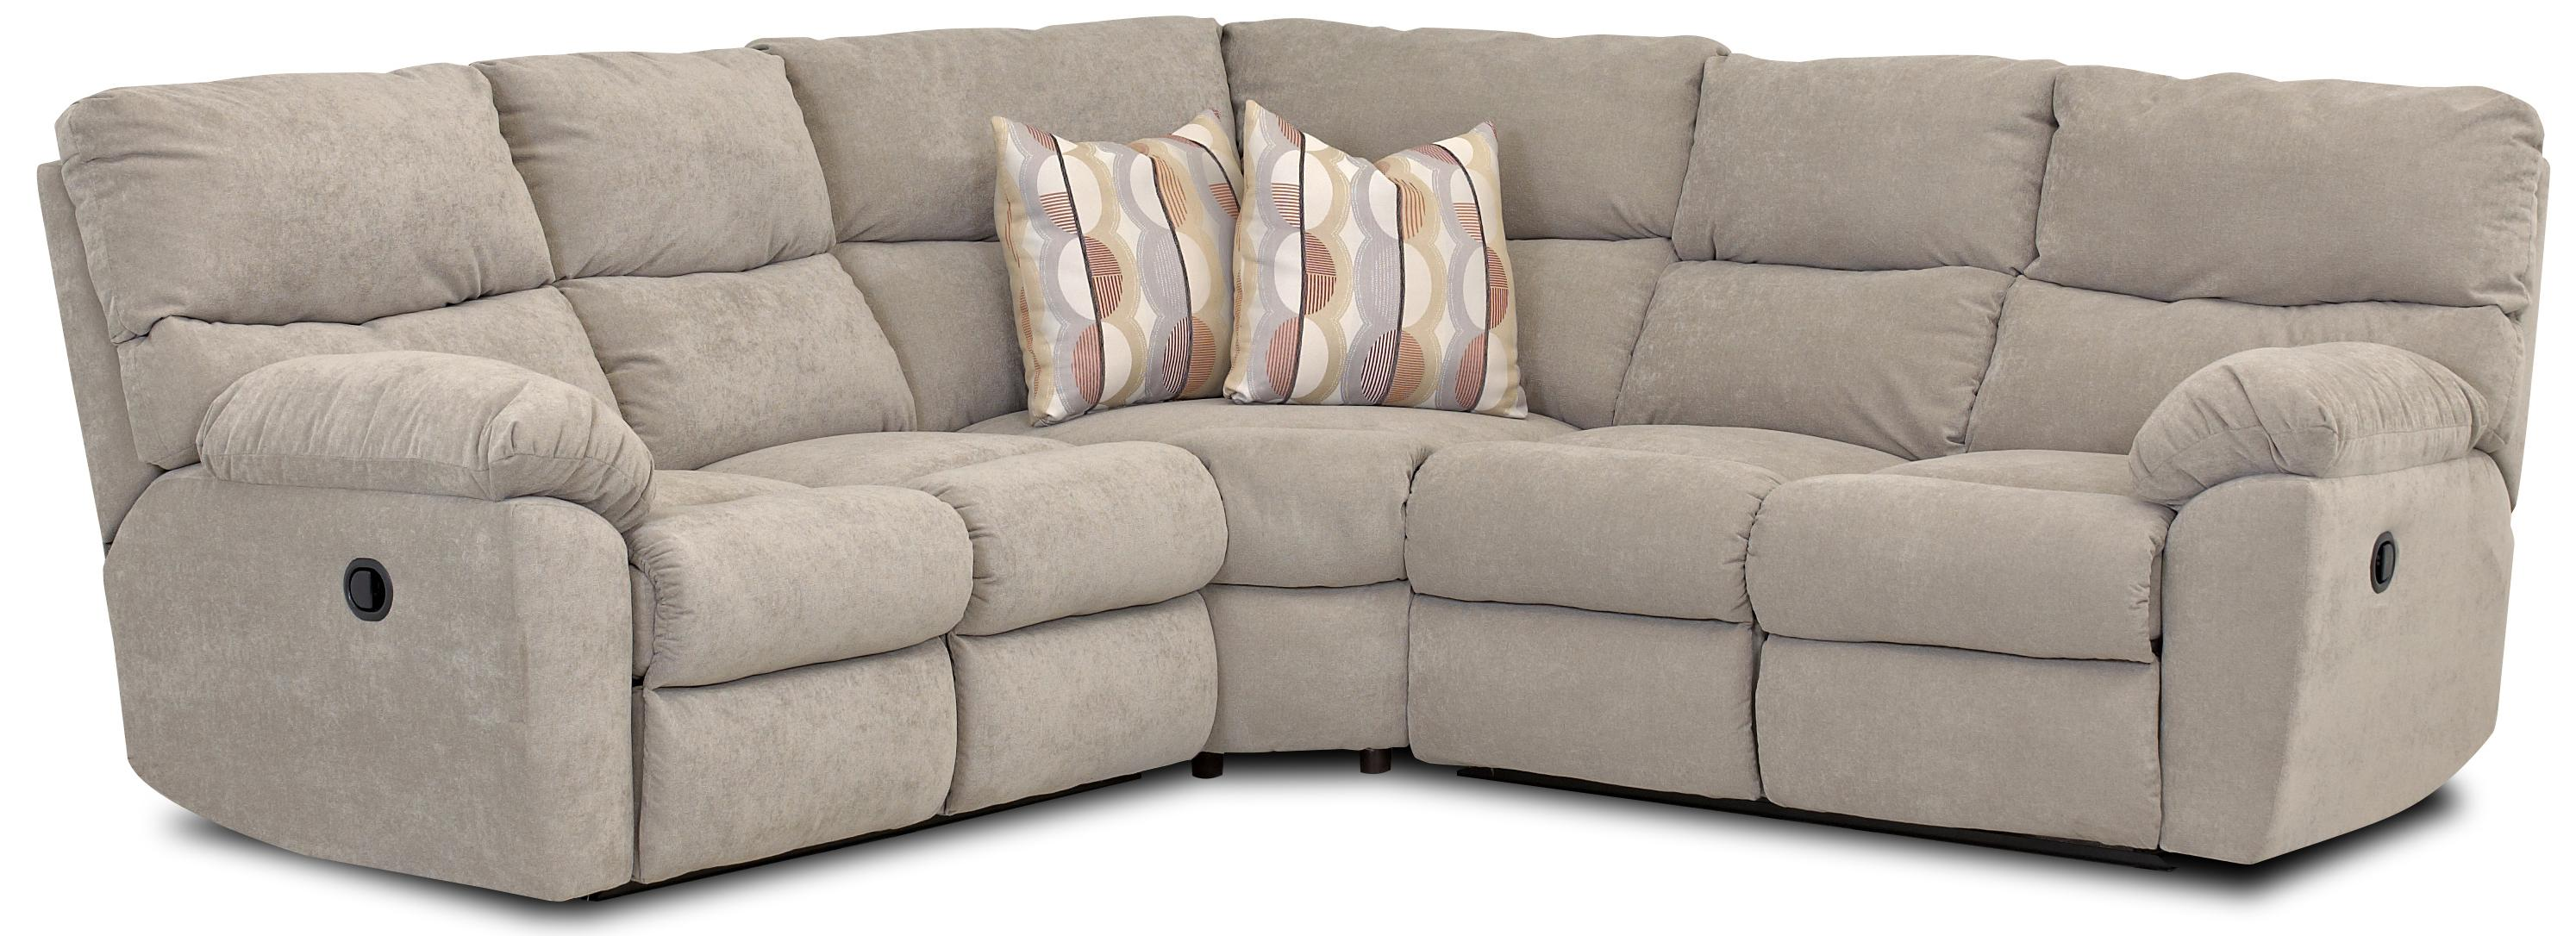 Casual Power Reclining Sectional with Accent Pillows by Klaussner